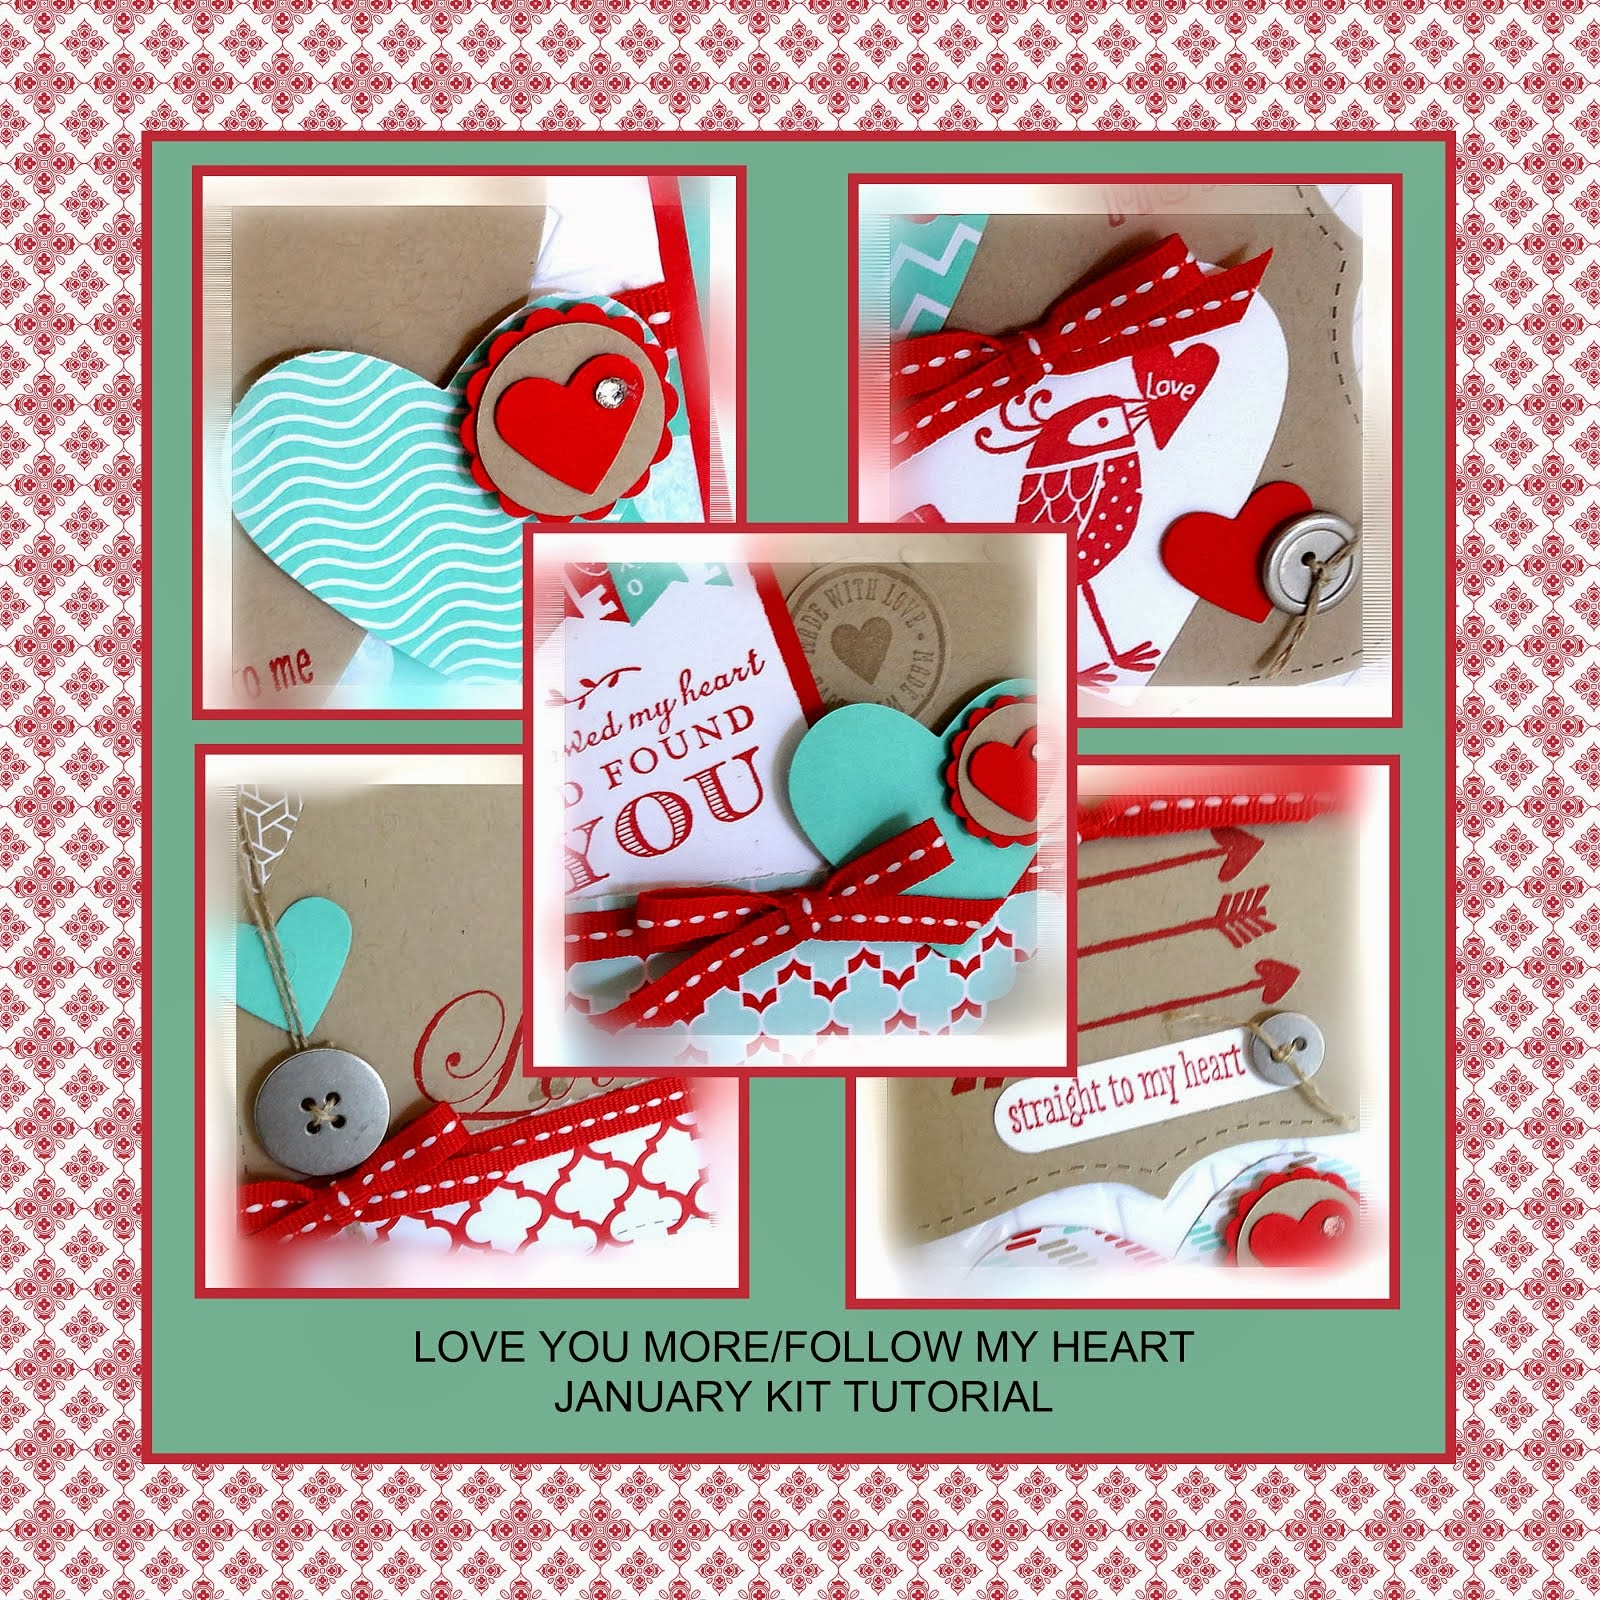 January Love You More/Follow My Heart Tutorial